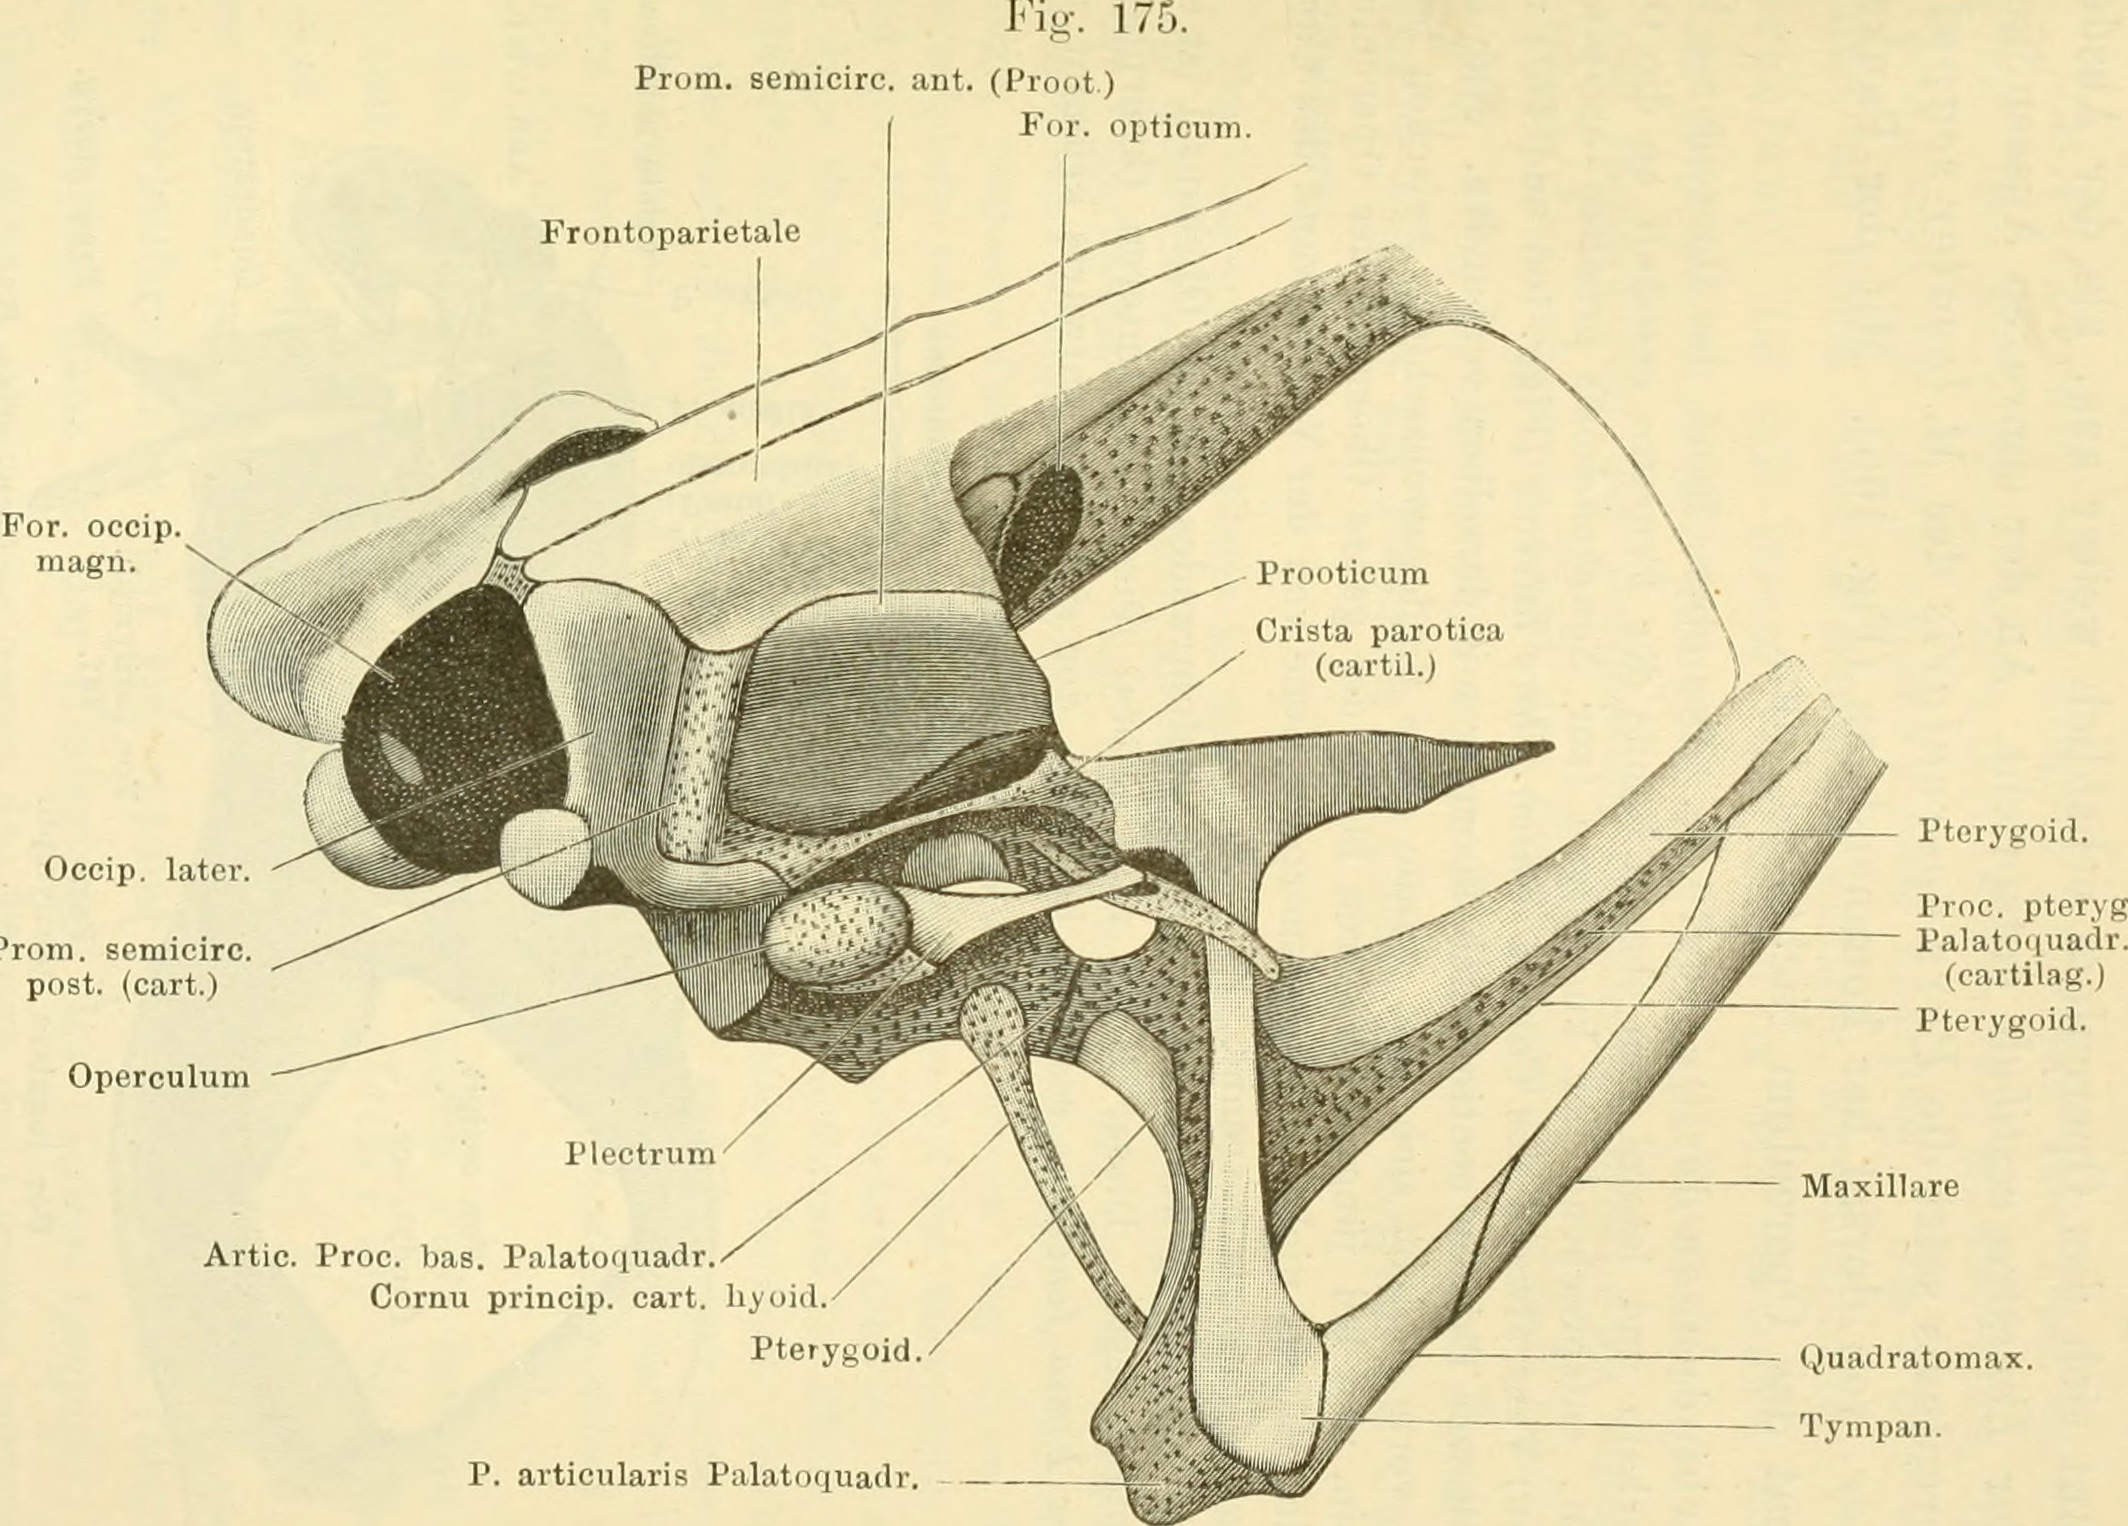 File:Anatomie des Frosches (1904) (17983925400).jpg - Wikimedia Commons